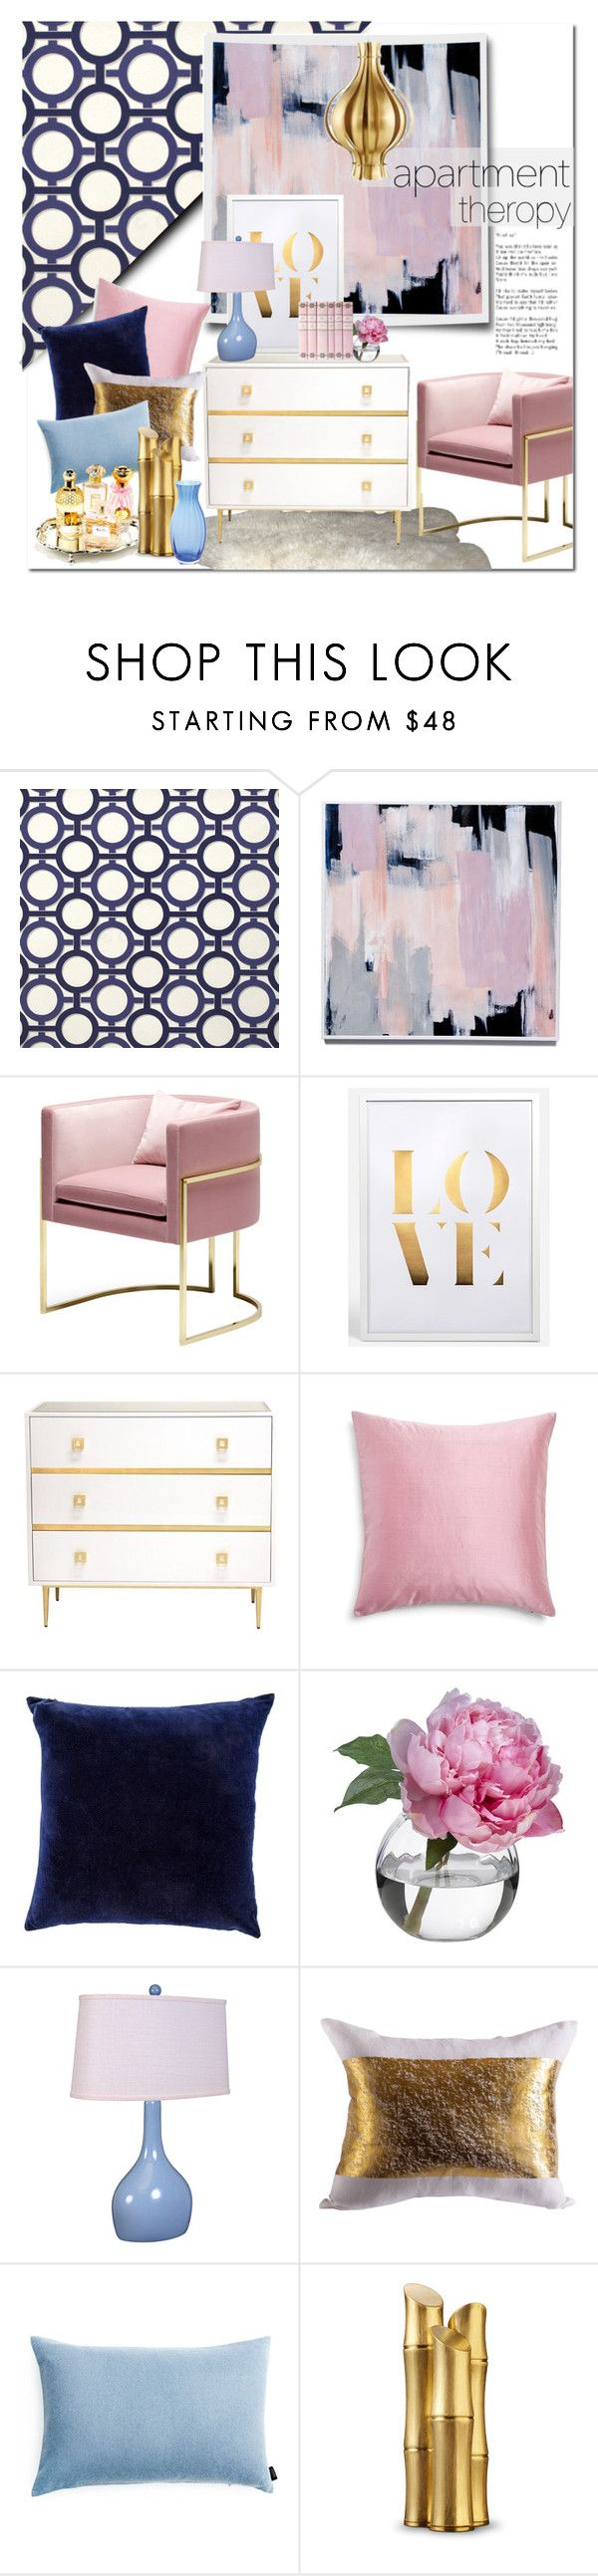 """Top Notch"" by qrystal5to9 ❤ liked on Polyvore featuring interior, interiors, interior design, home, home decor, interior decorating, Graham & Brown, Worlds Away, Diane James and Universal Lighting and Decor"